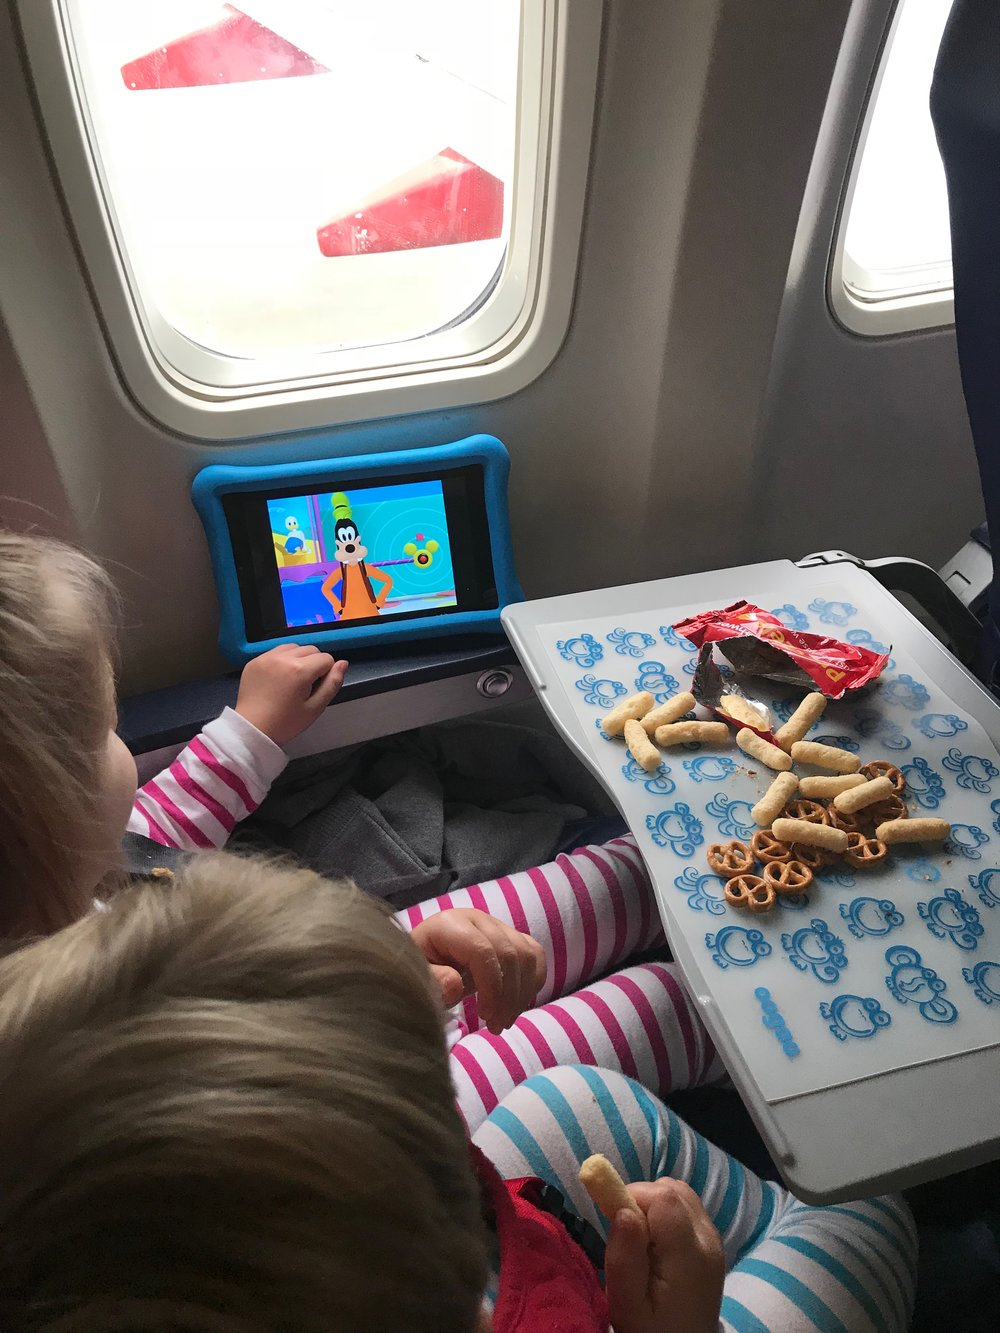 The kids eating snacks on a domestic flight; they are using their oogaa silicone mat to keep the snacks germ free.